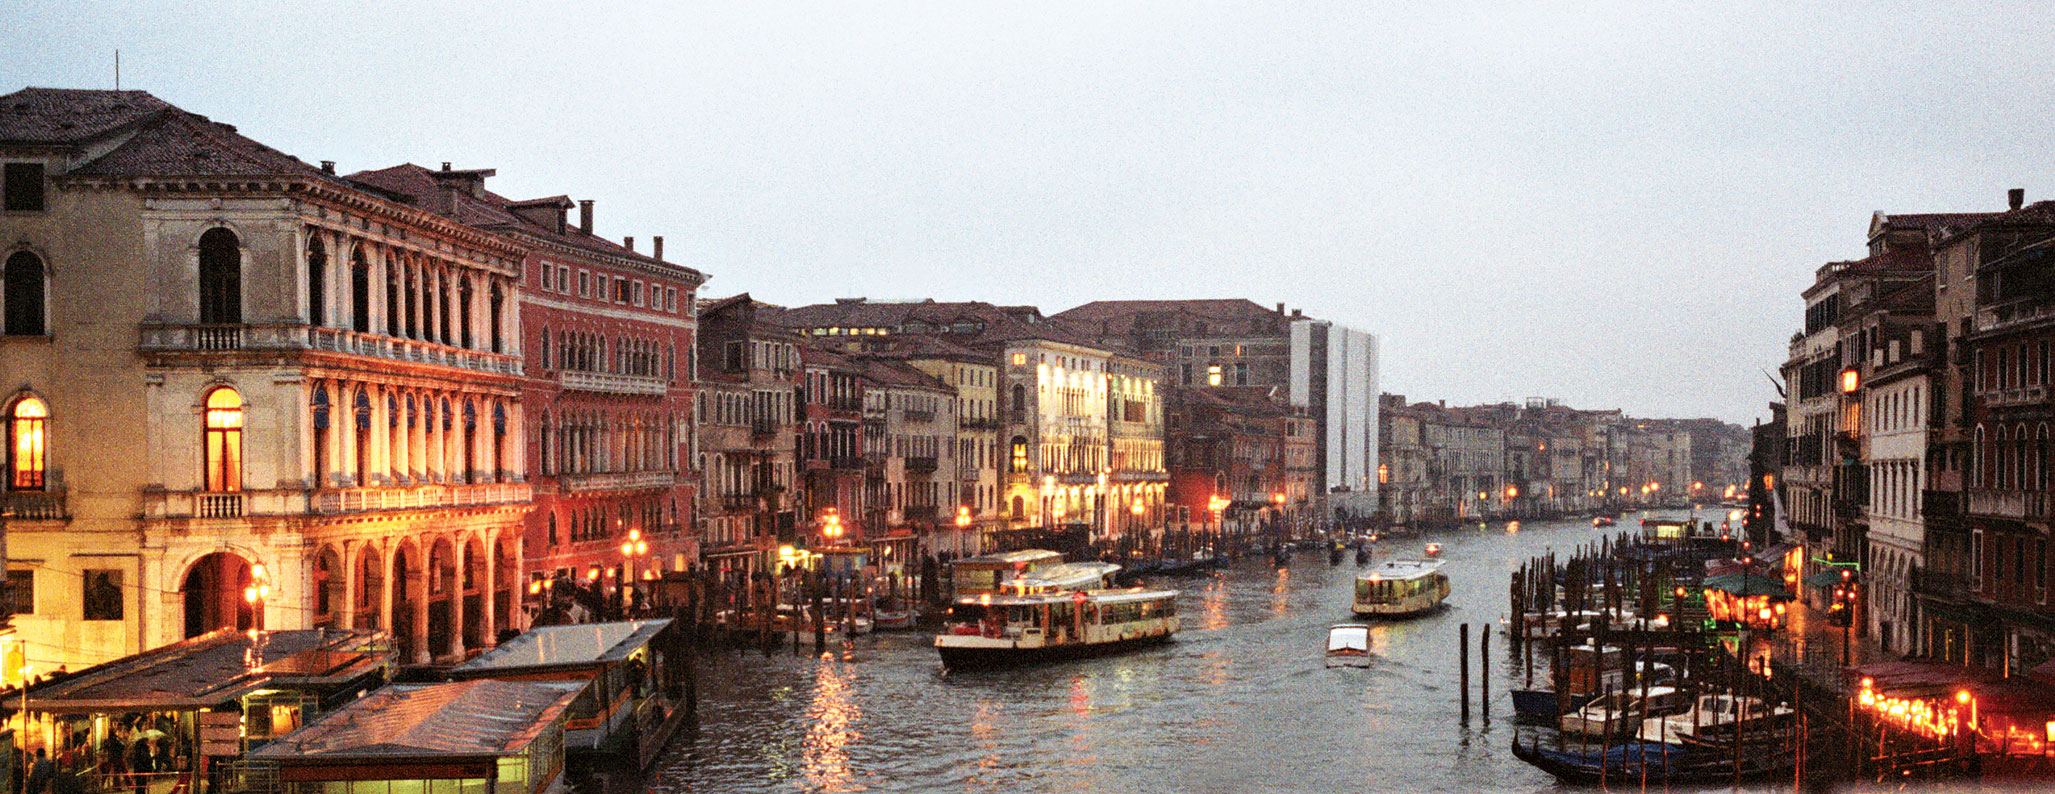 Dr. Larry Sobel shot this image of the Rialto Bridge in Venice during a trip to Italy for his 50th birthday. He used a Hasselblad Xpan 35mm panorama camera with several time exposures